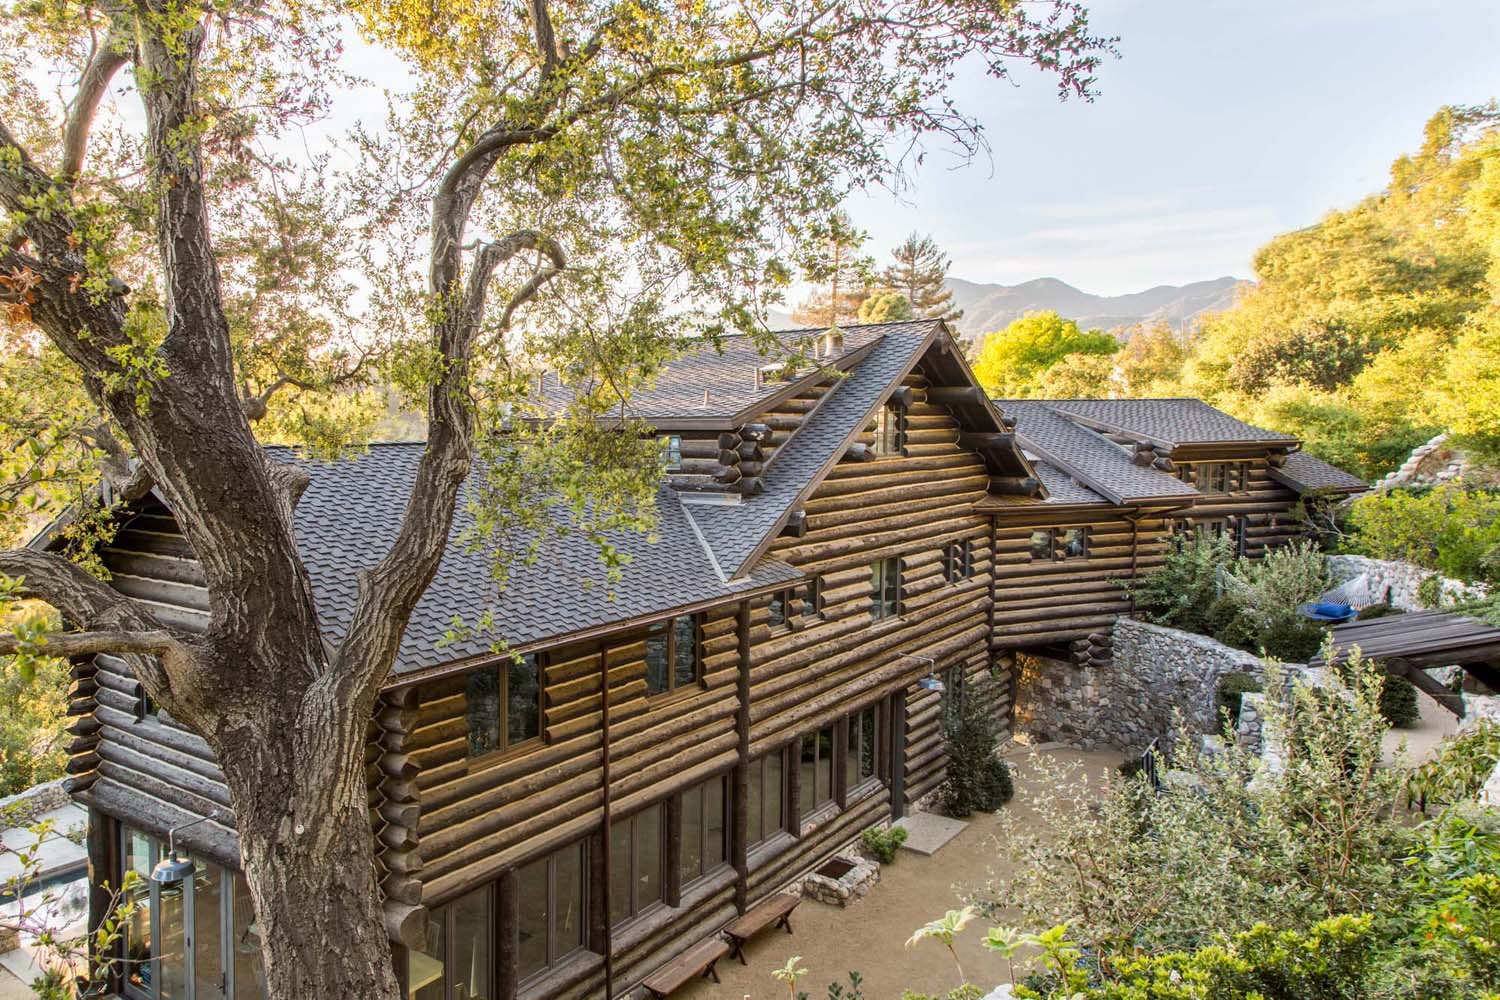 The Butler home in Rustic Canyon.  Consturction by Eric Dobkin, interior design by Lisa Strong.